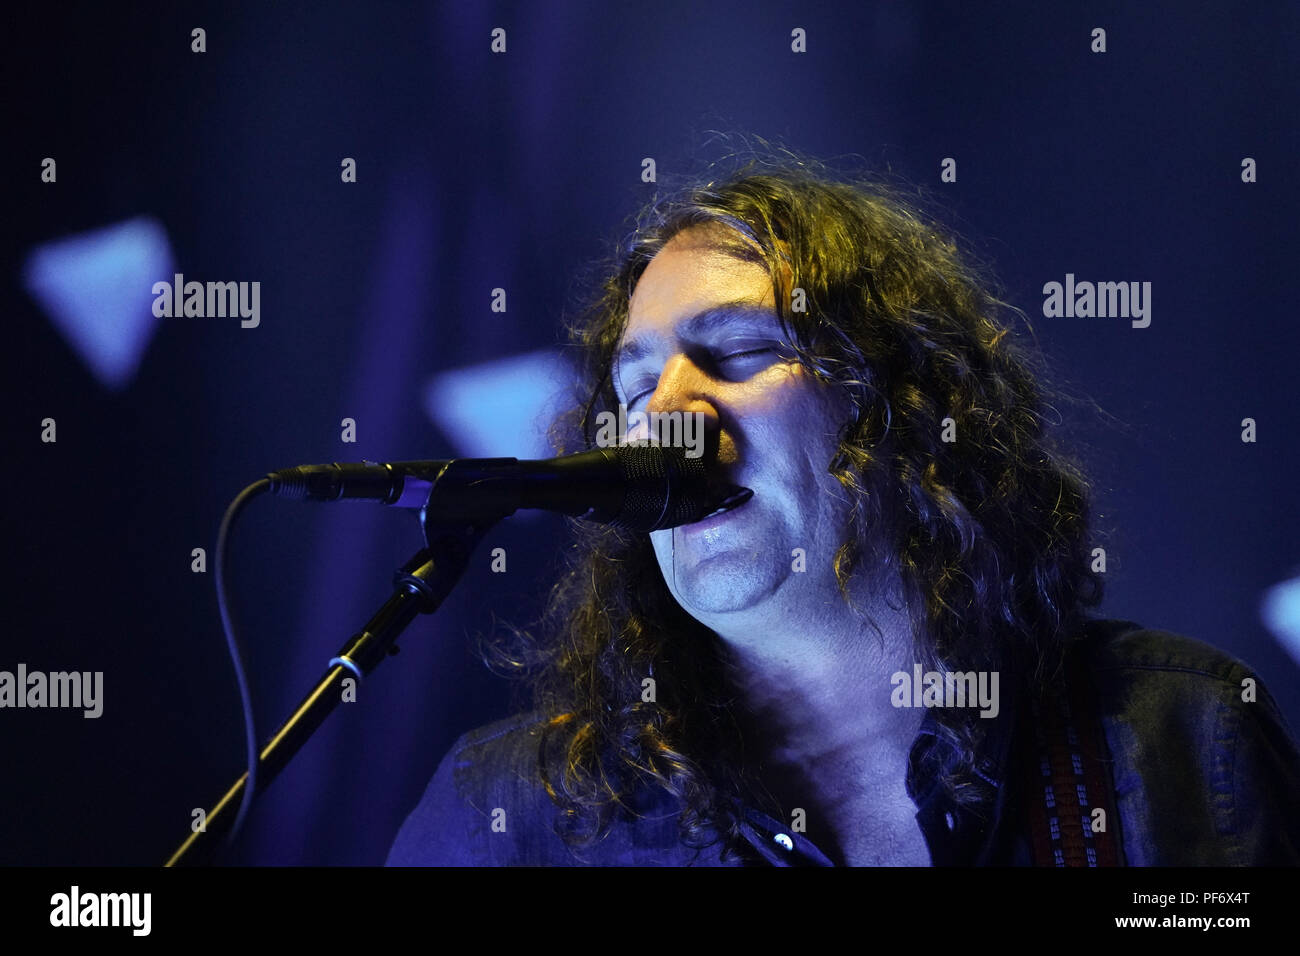 War On Drugs Stock Photos & War On Drugs Stock Images - Alamy